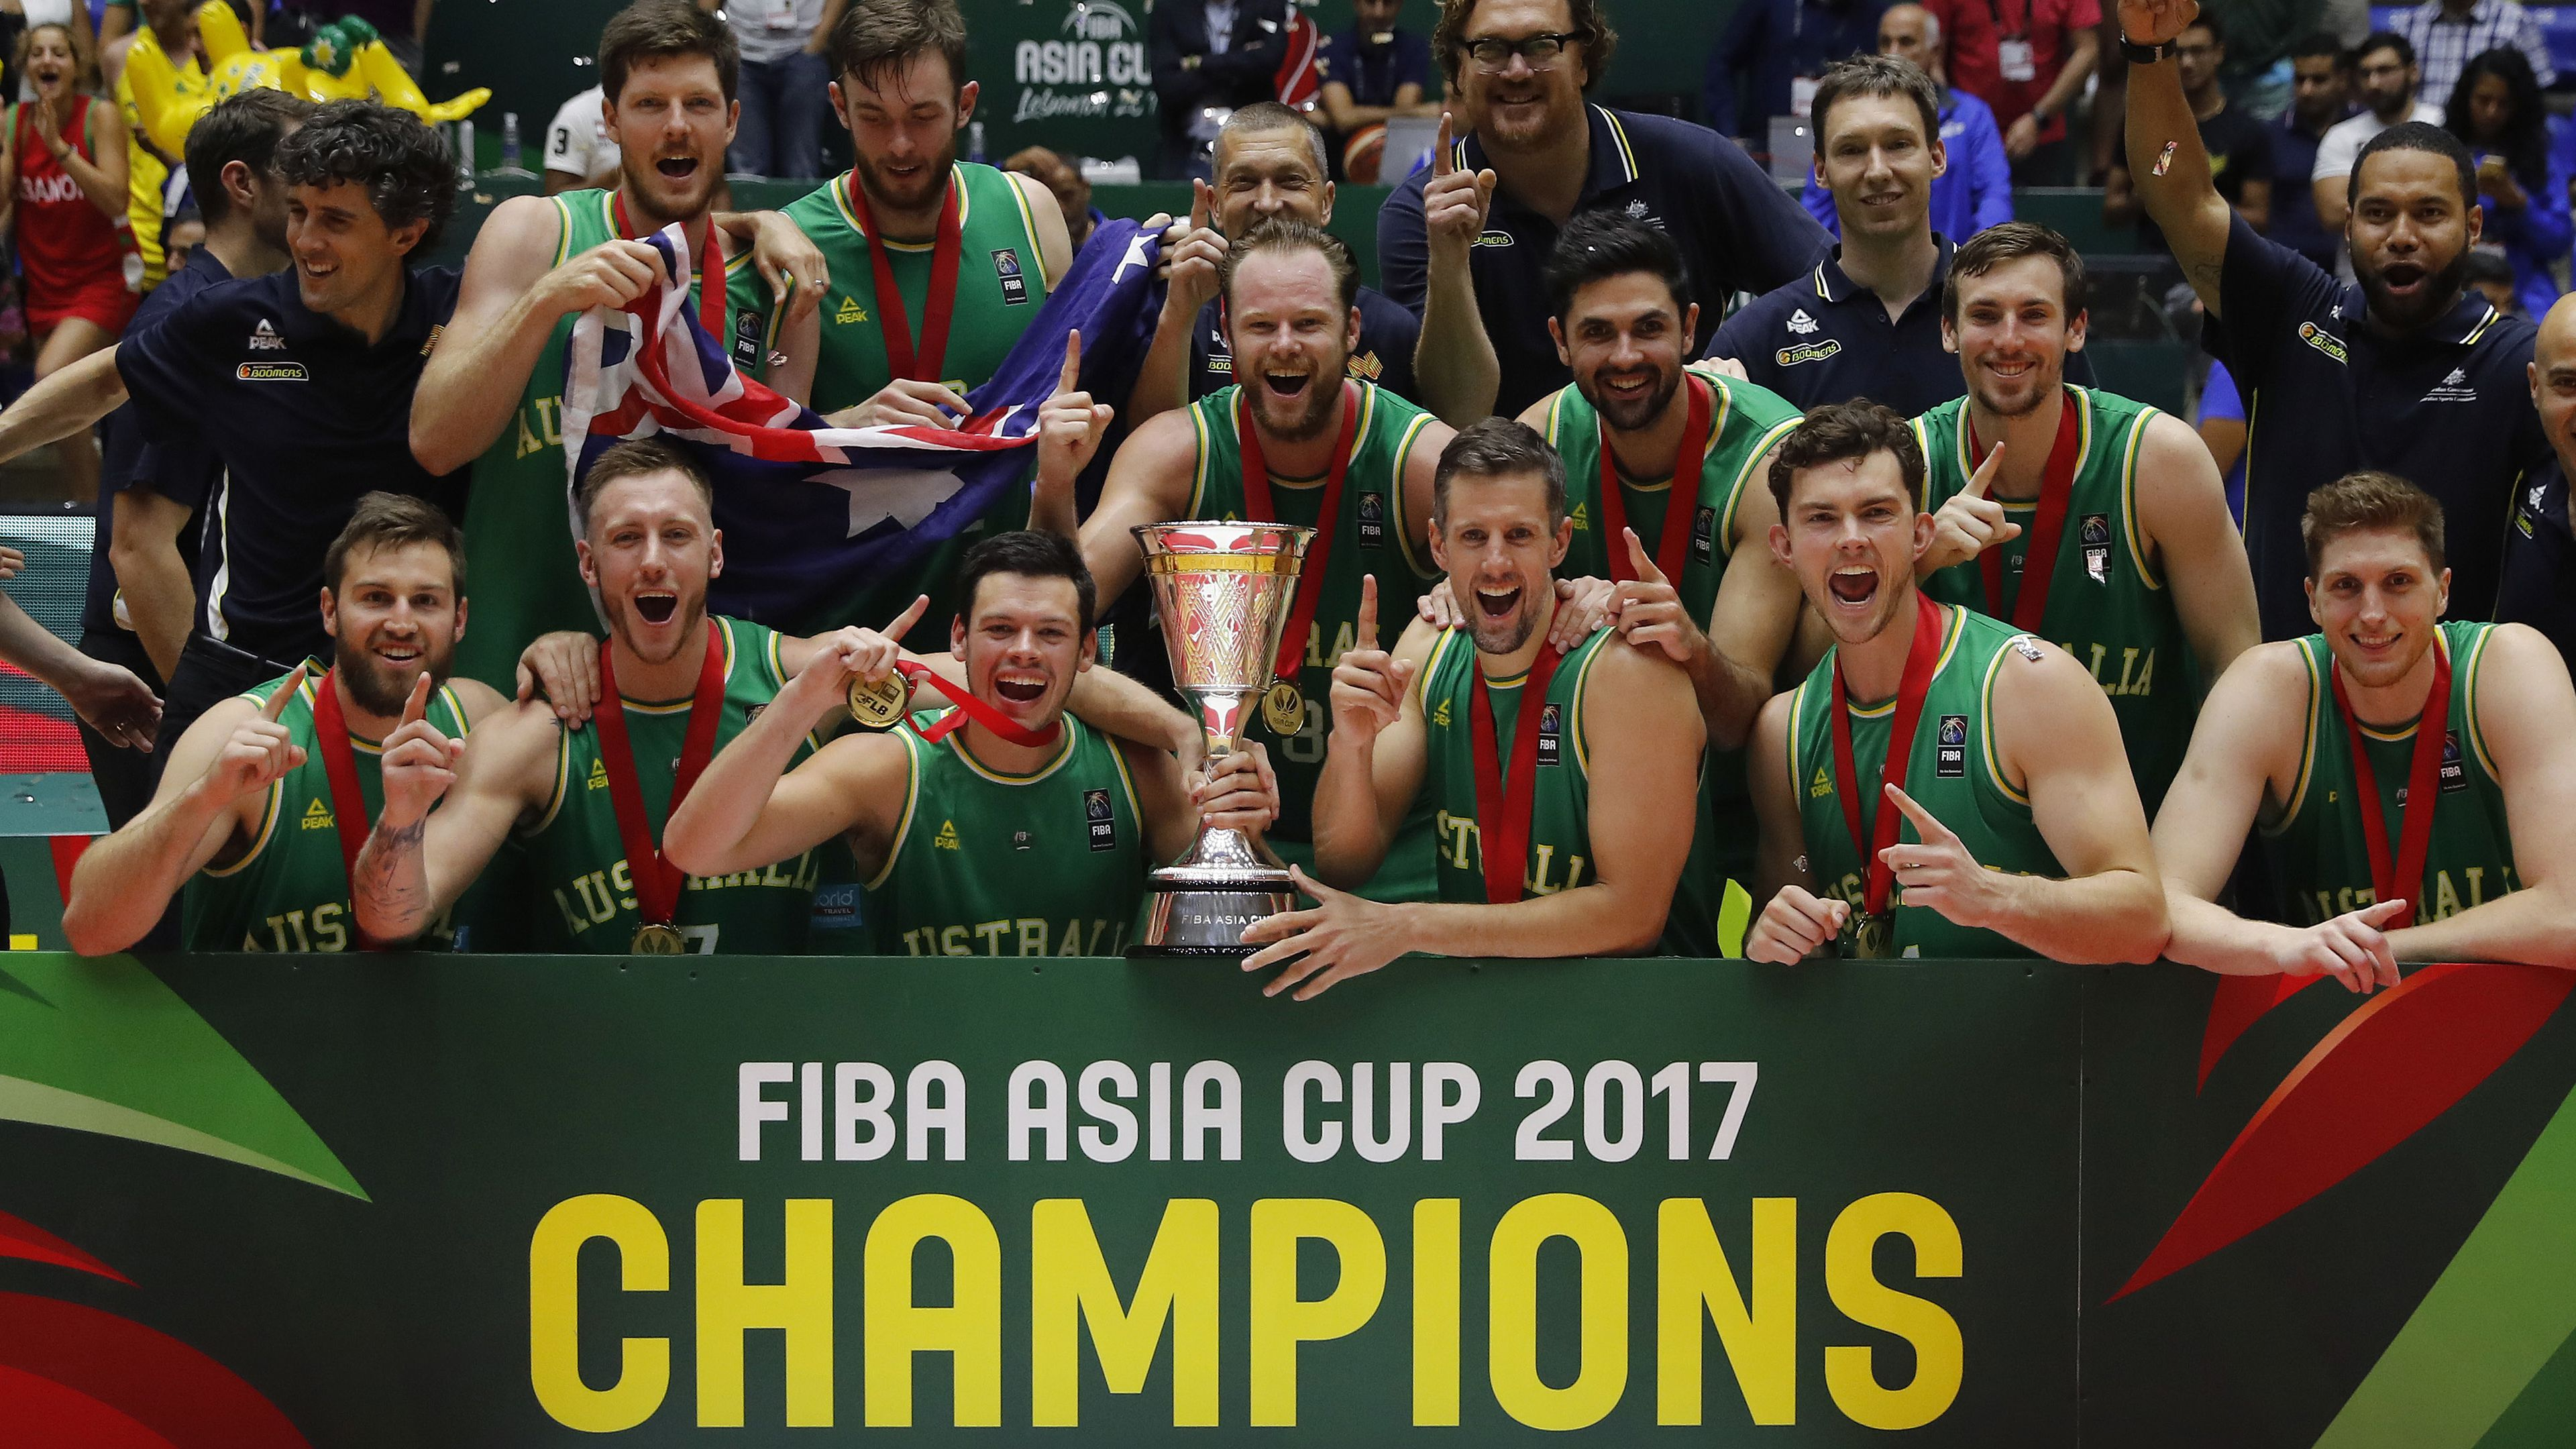 Boomers win FIBA Asia Cup but controversially miss out on All Star selection